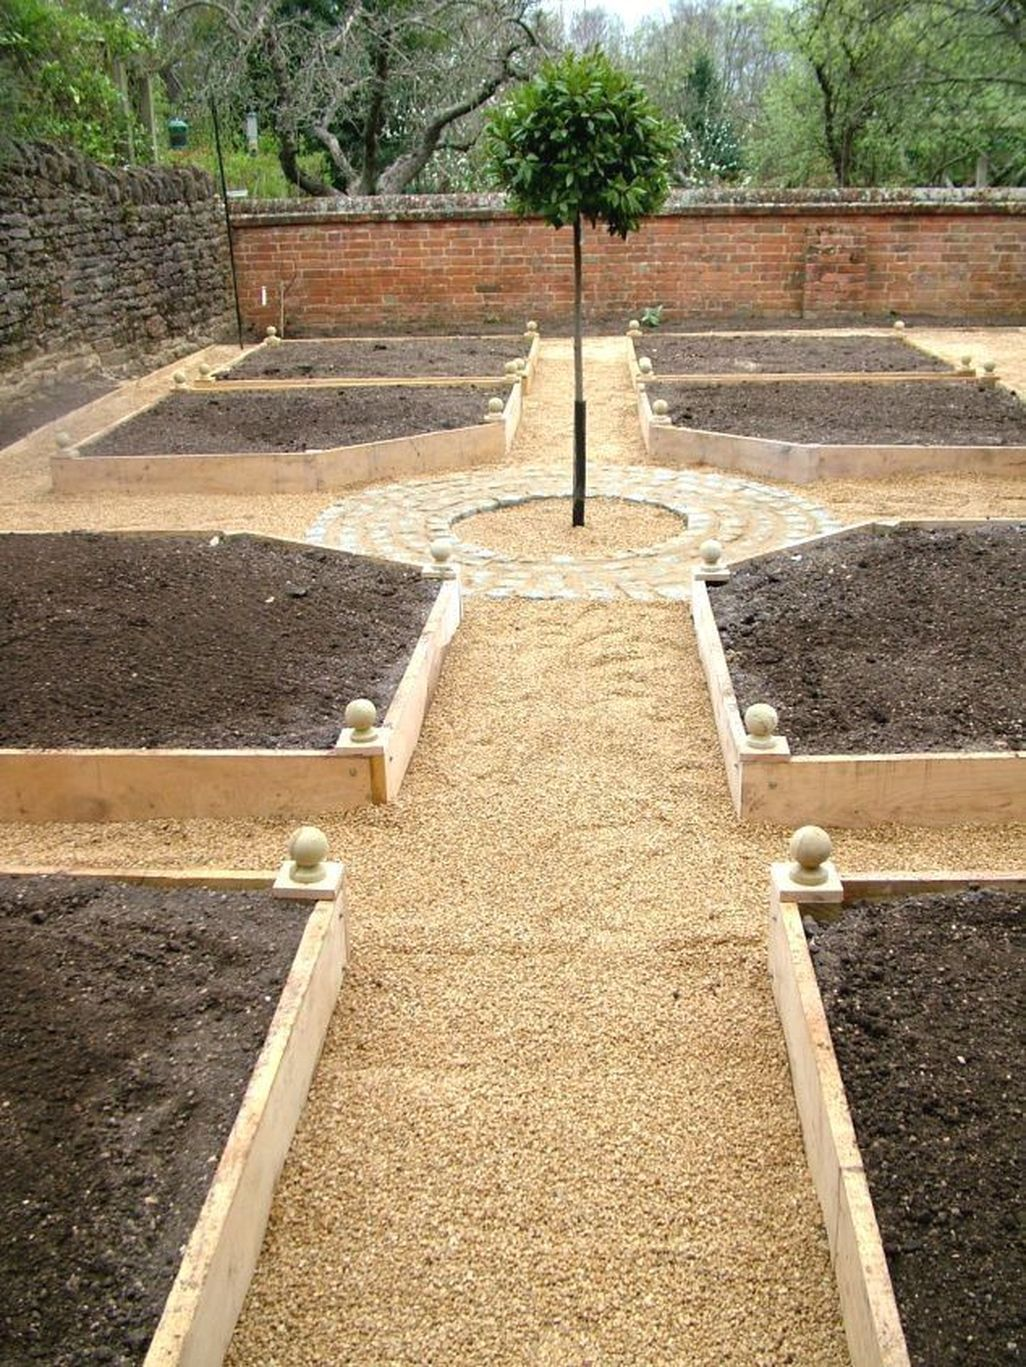 40 Relaxing Vegetable Garden Ideas That Look Great | Gardening ...